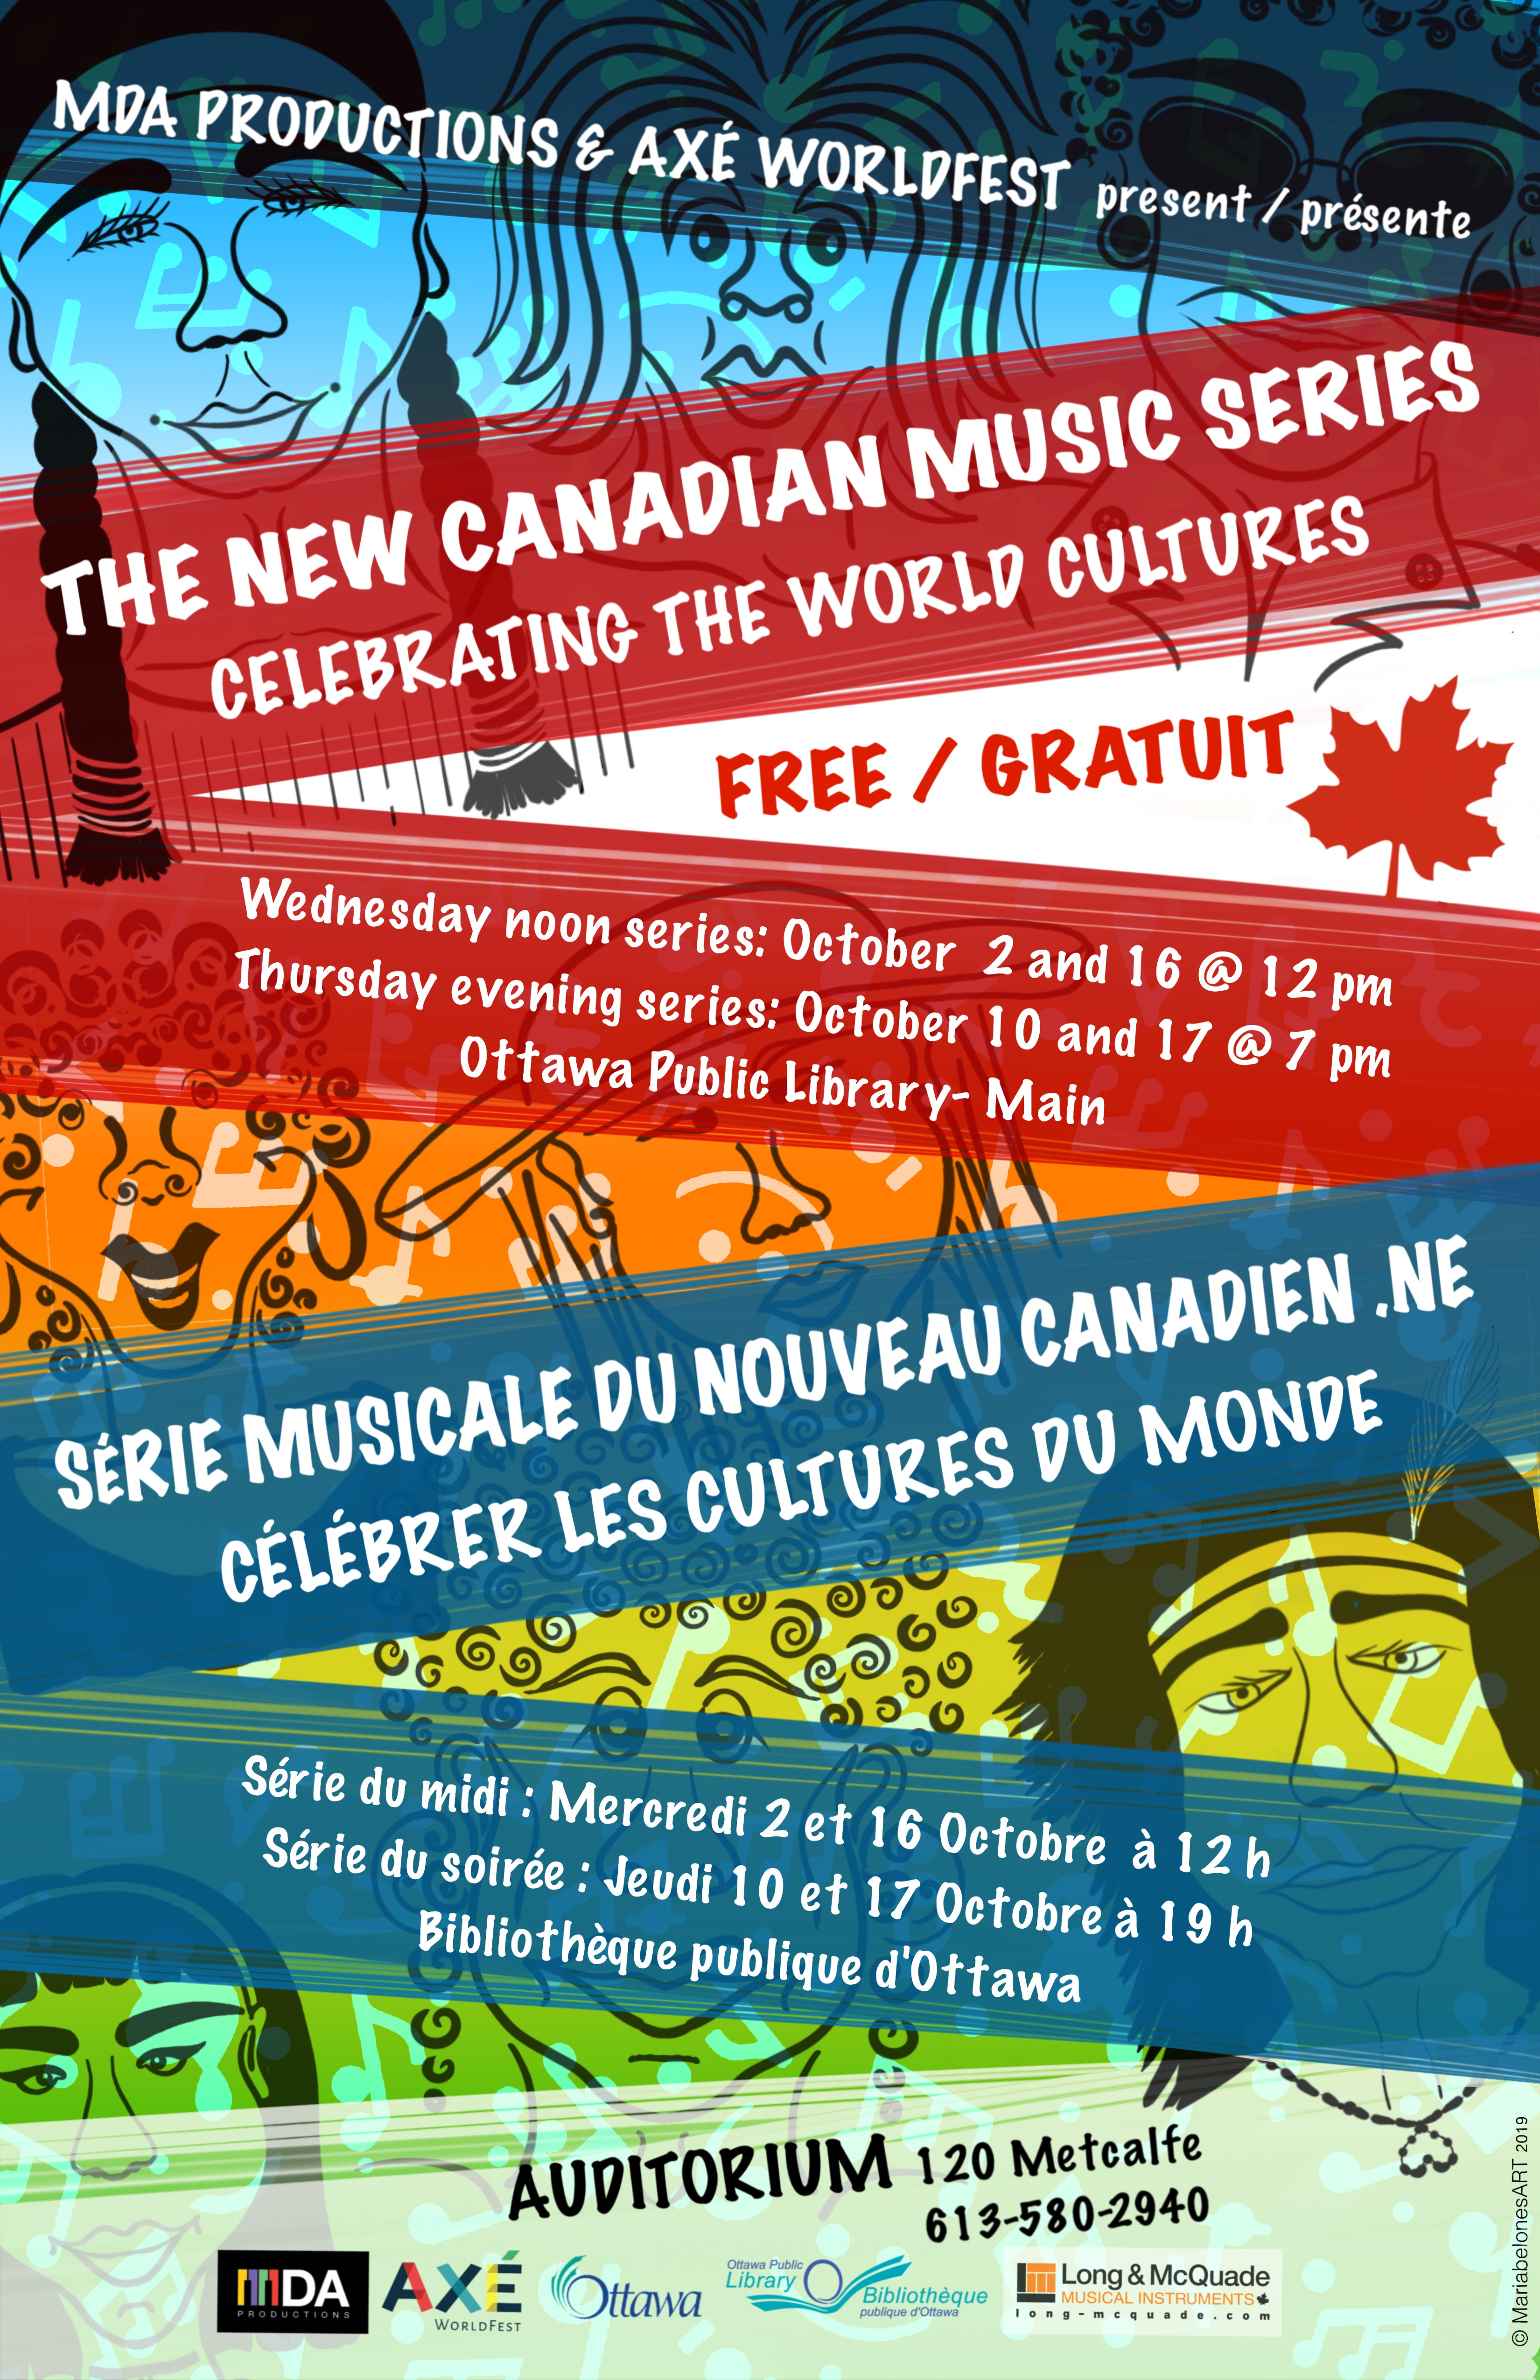 Poster for the New Canadian Music Series